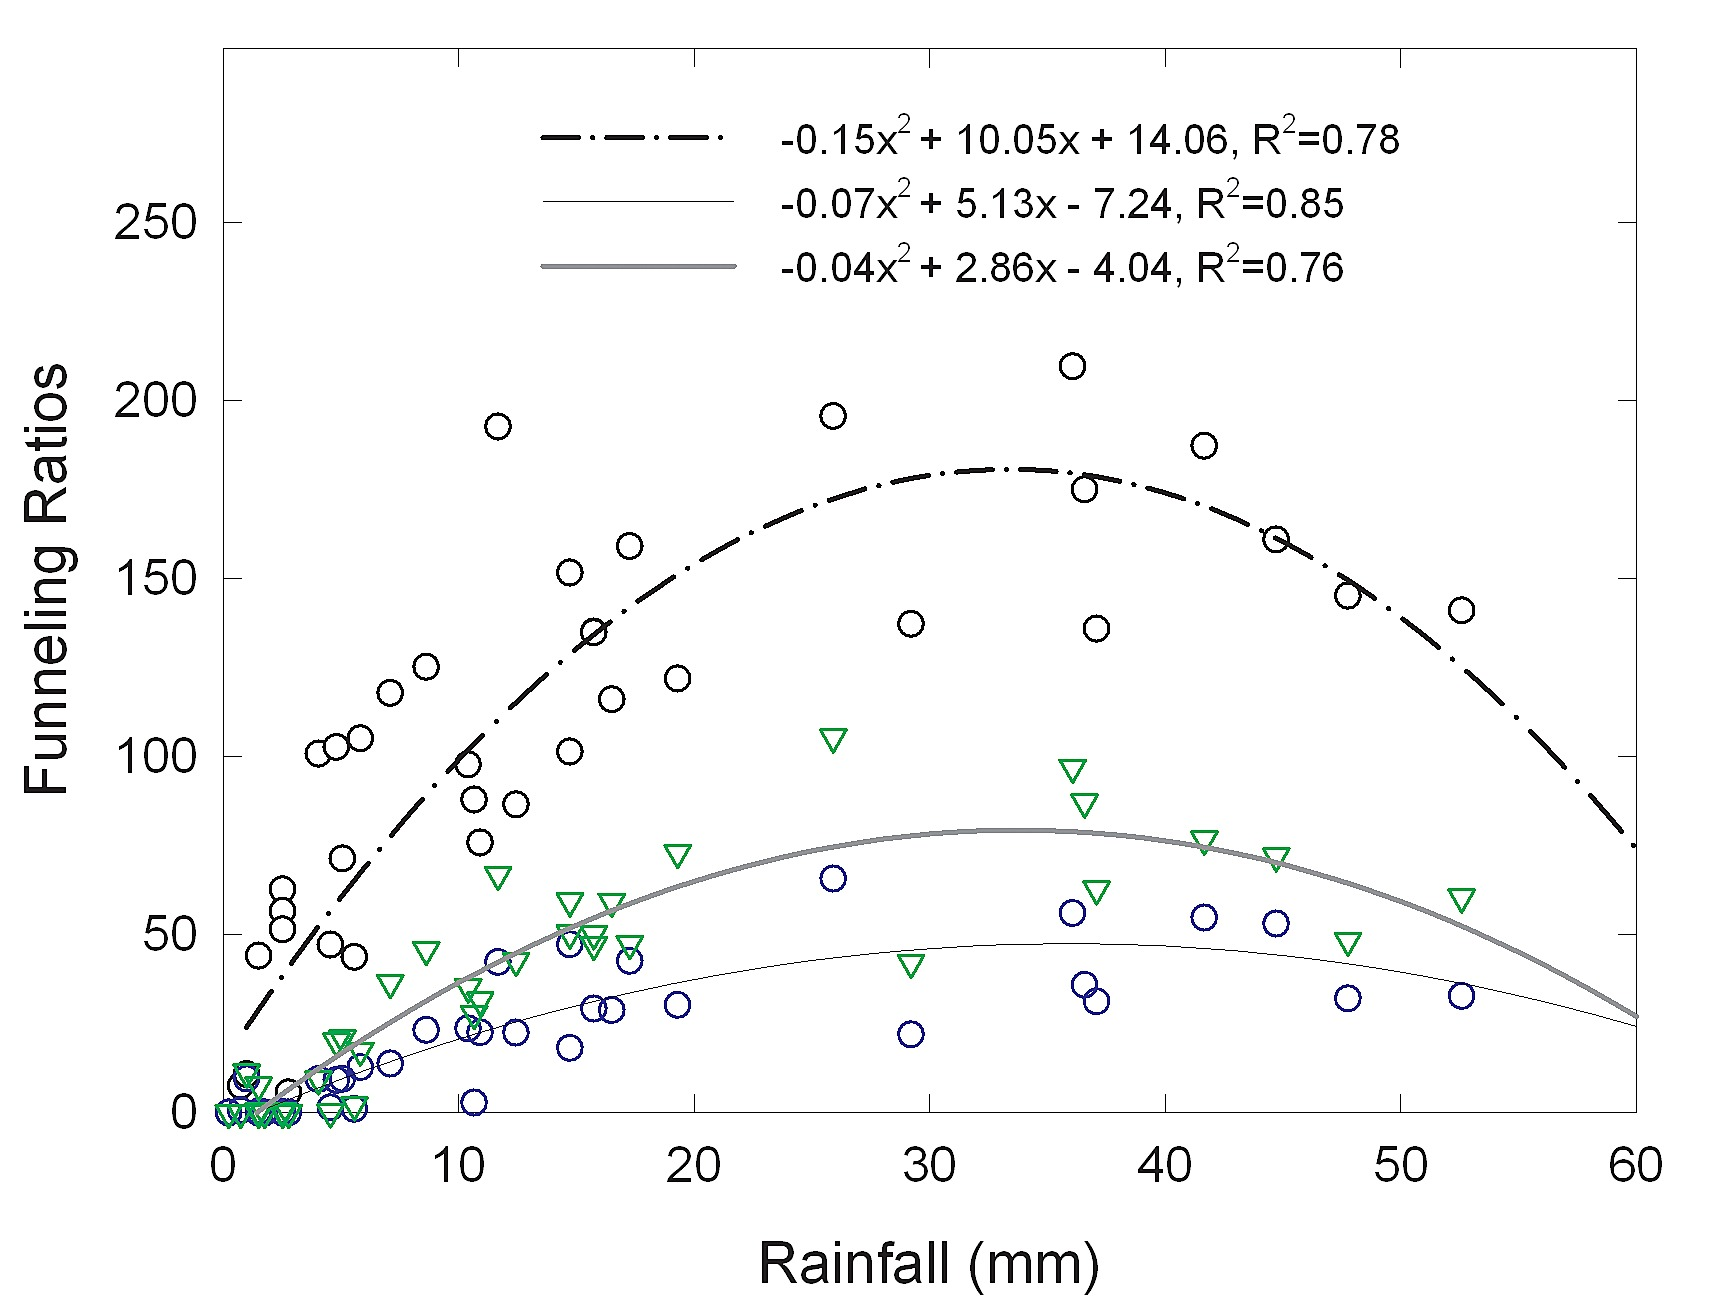 Relationships between event stemflow funneling ratios and rainfall